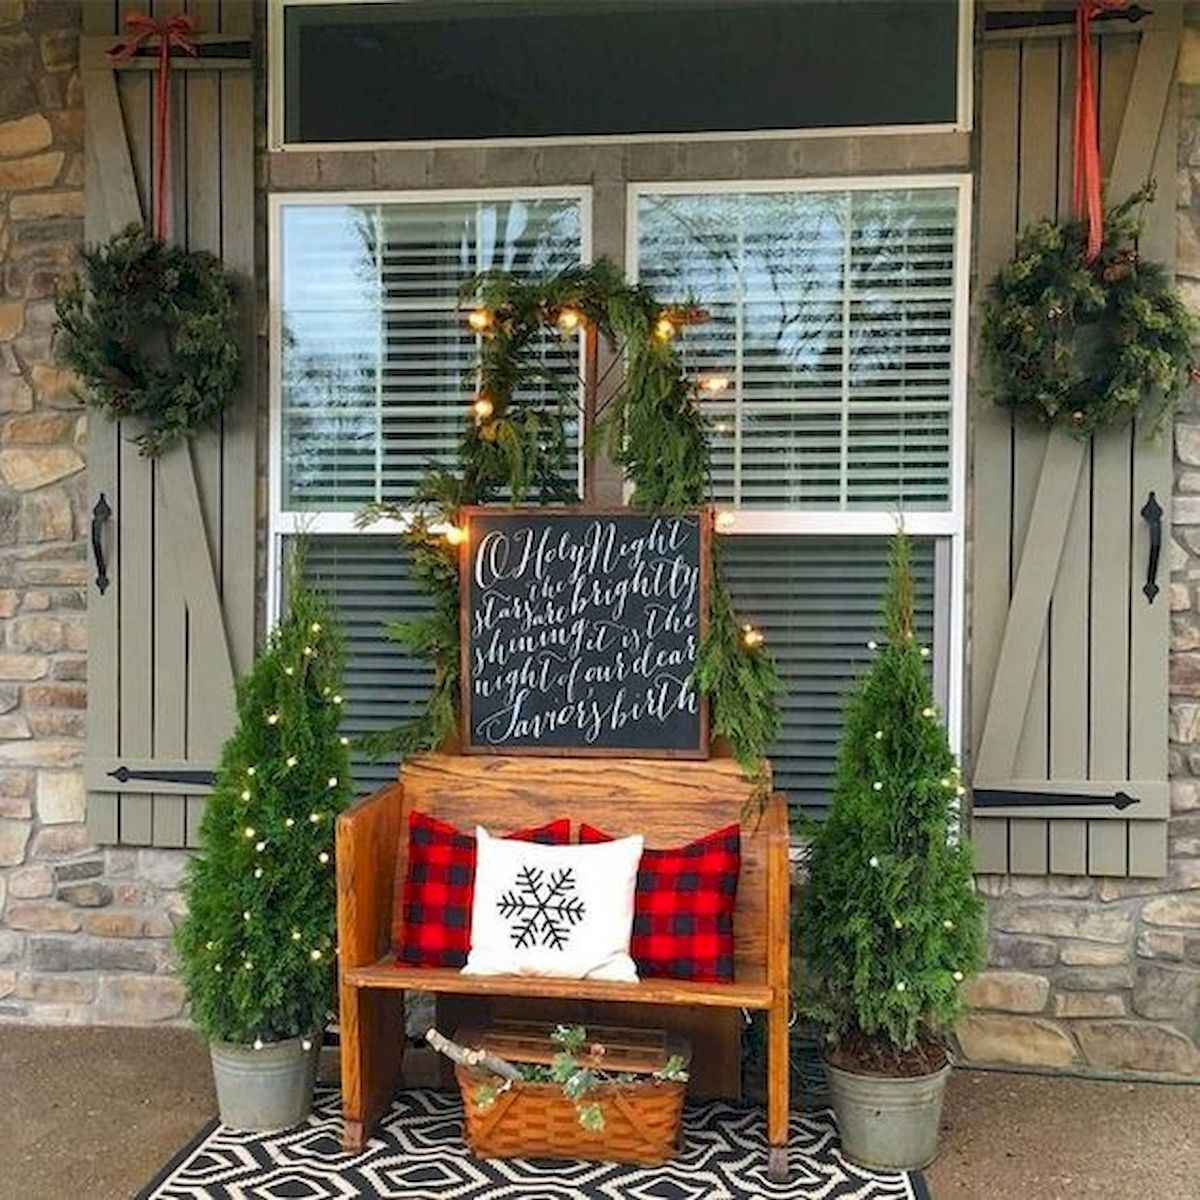 50 front porches farmhouse christmas decorations ideas (17)